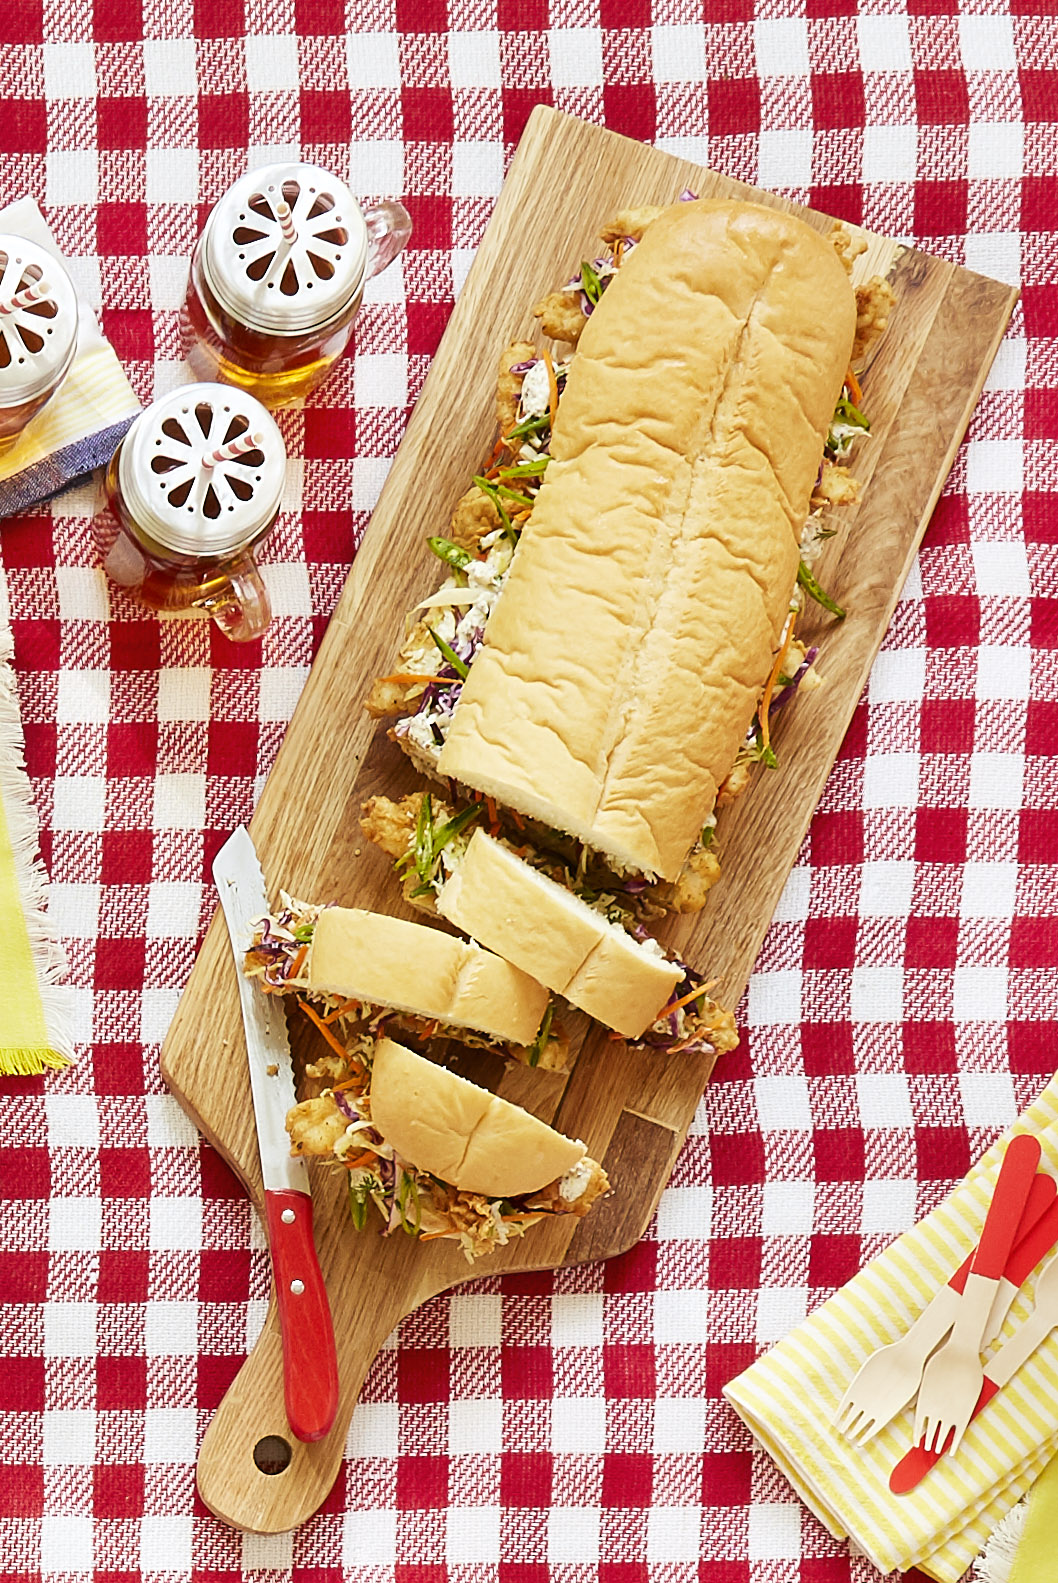 90 Summer Picnic Recipes Easy Food Ideas For A Summer